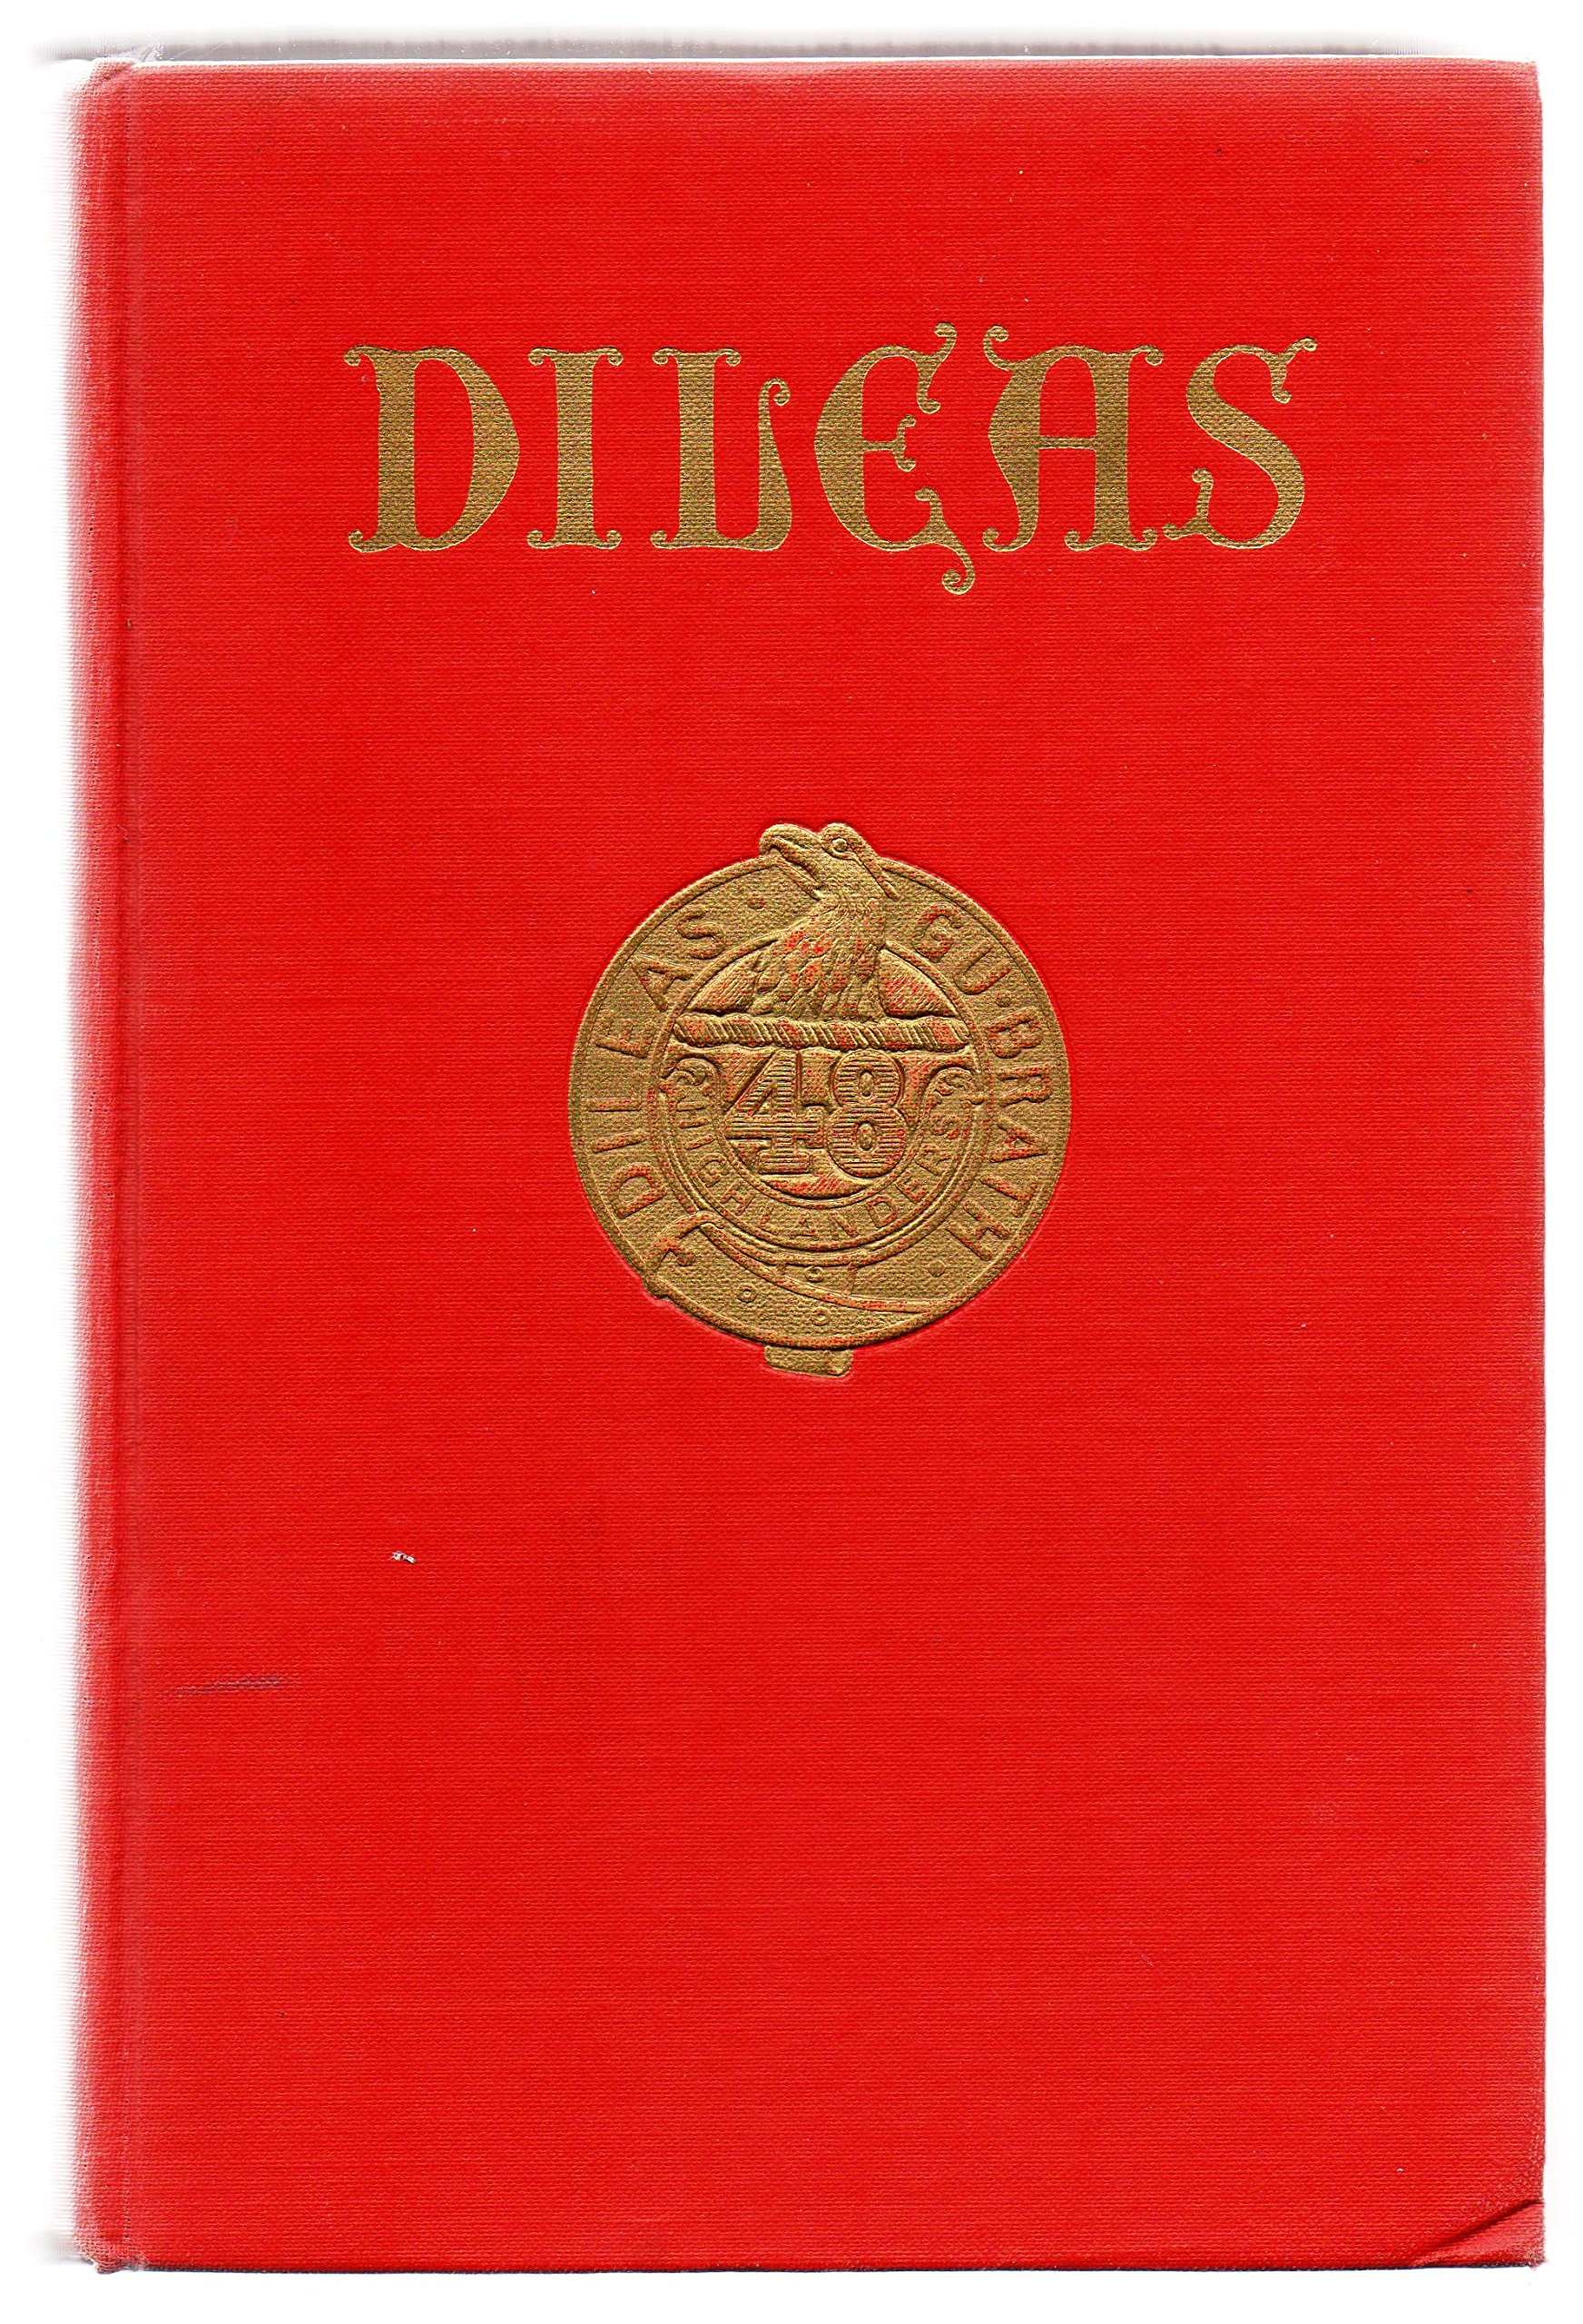 Dileas: History of the 48th Highlanders of Canada, 1929-1956